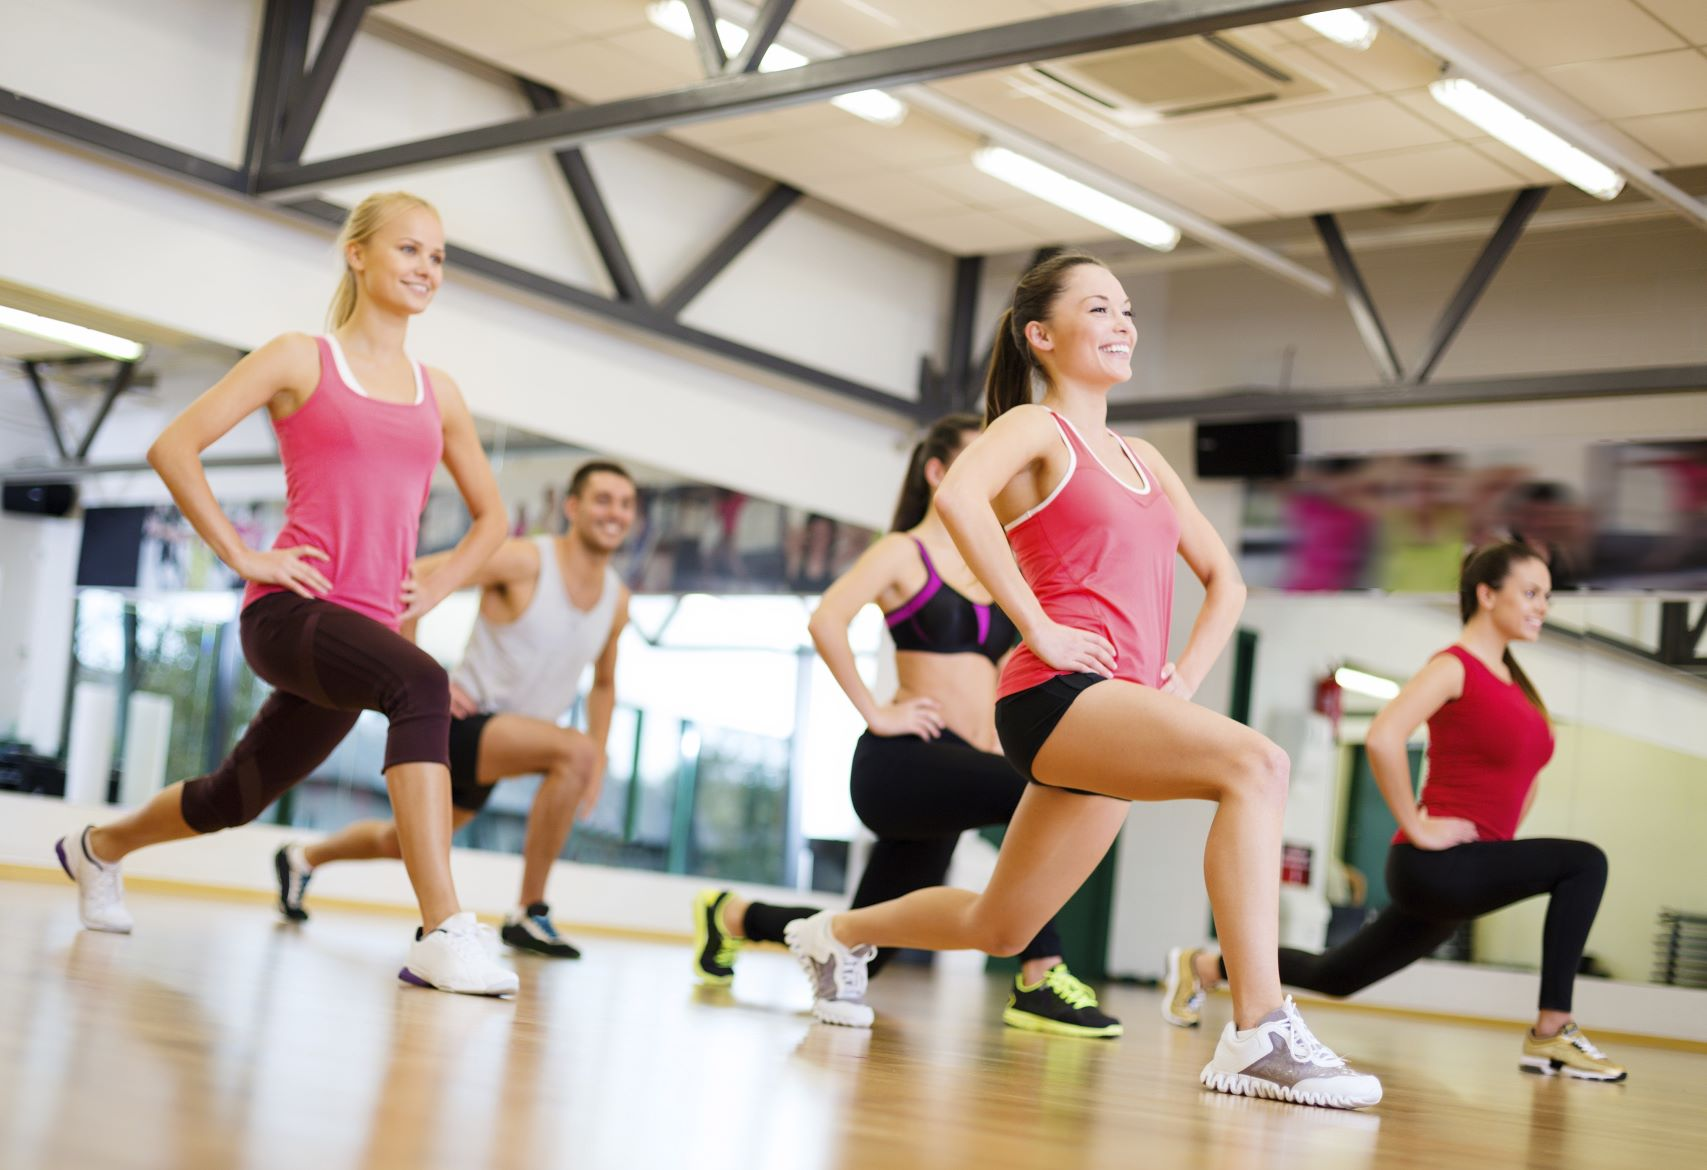 group of women in a gym class lunging